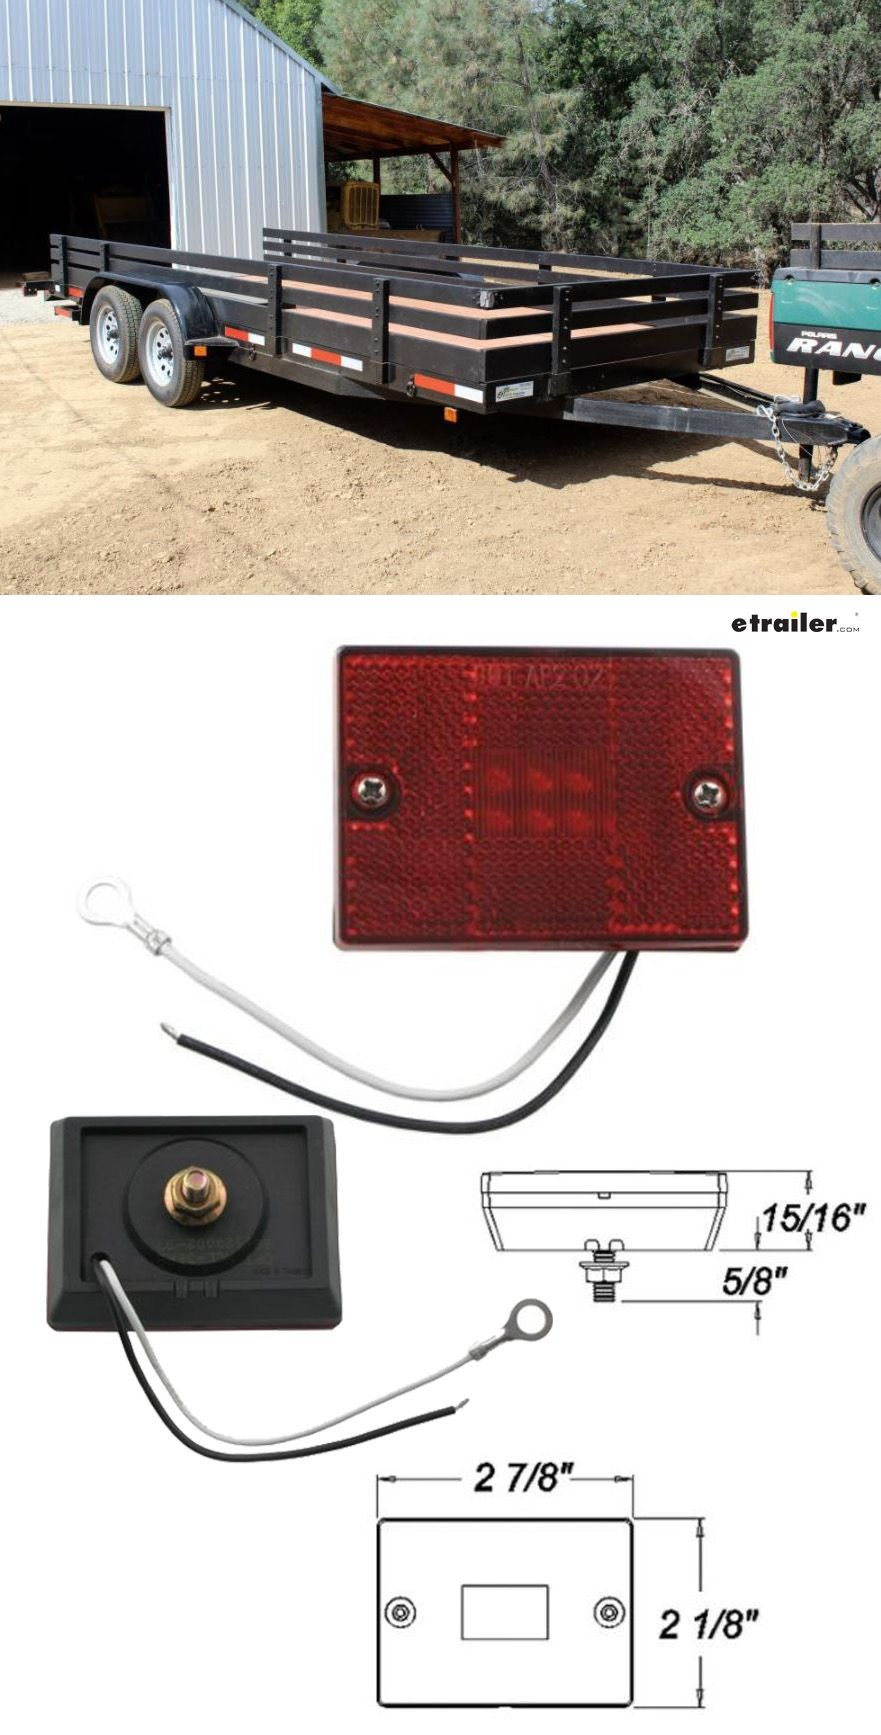 Harbor Freight Trailer Lights Wiring Diagram Image Marker Square Led Clearance Side Light With Reflector Stud Mount 6 Diode Red Optronics